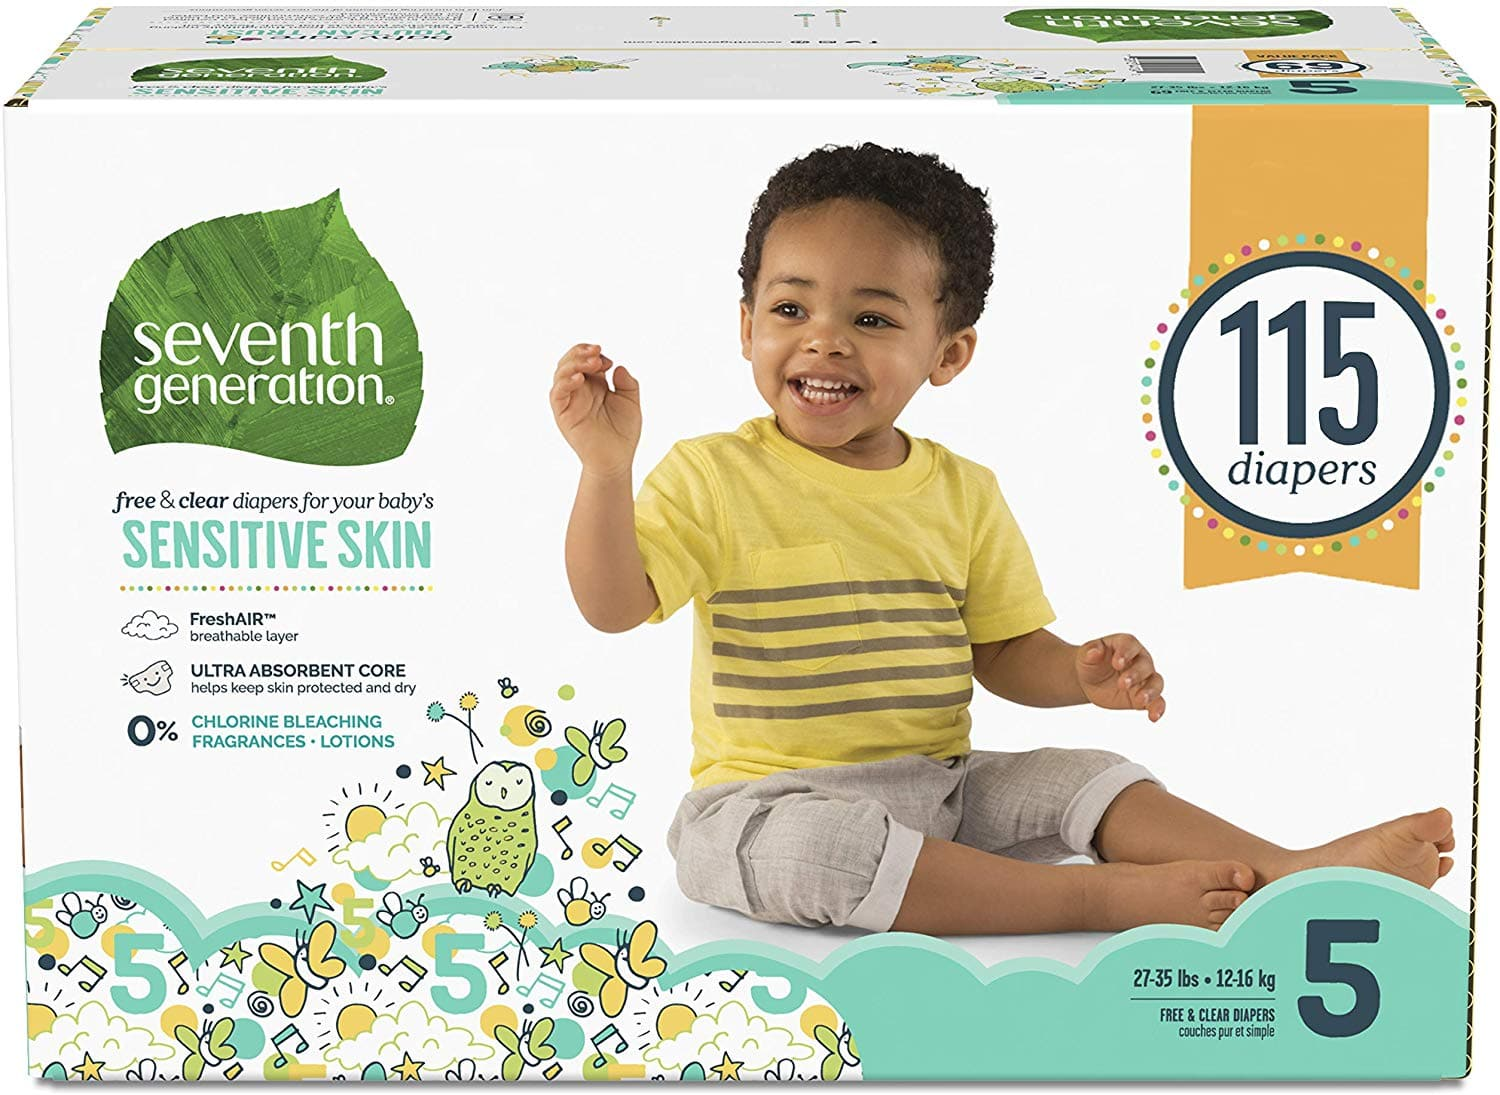 Seventh Generation Baby Diapers for Sensitive Skin, Animal Prints, Size 5, 115 Count (Packaging May Vary) $11.67 or less